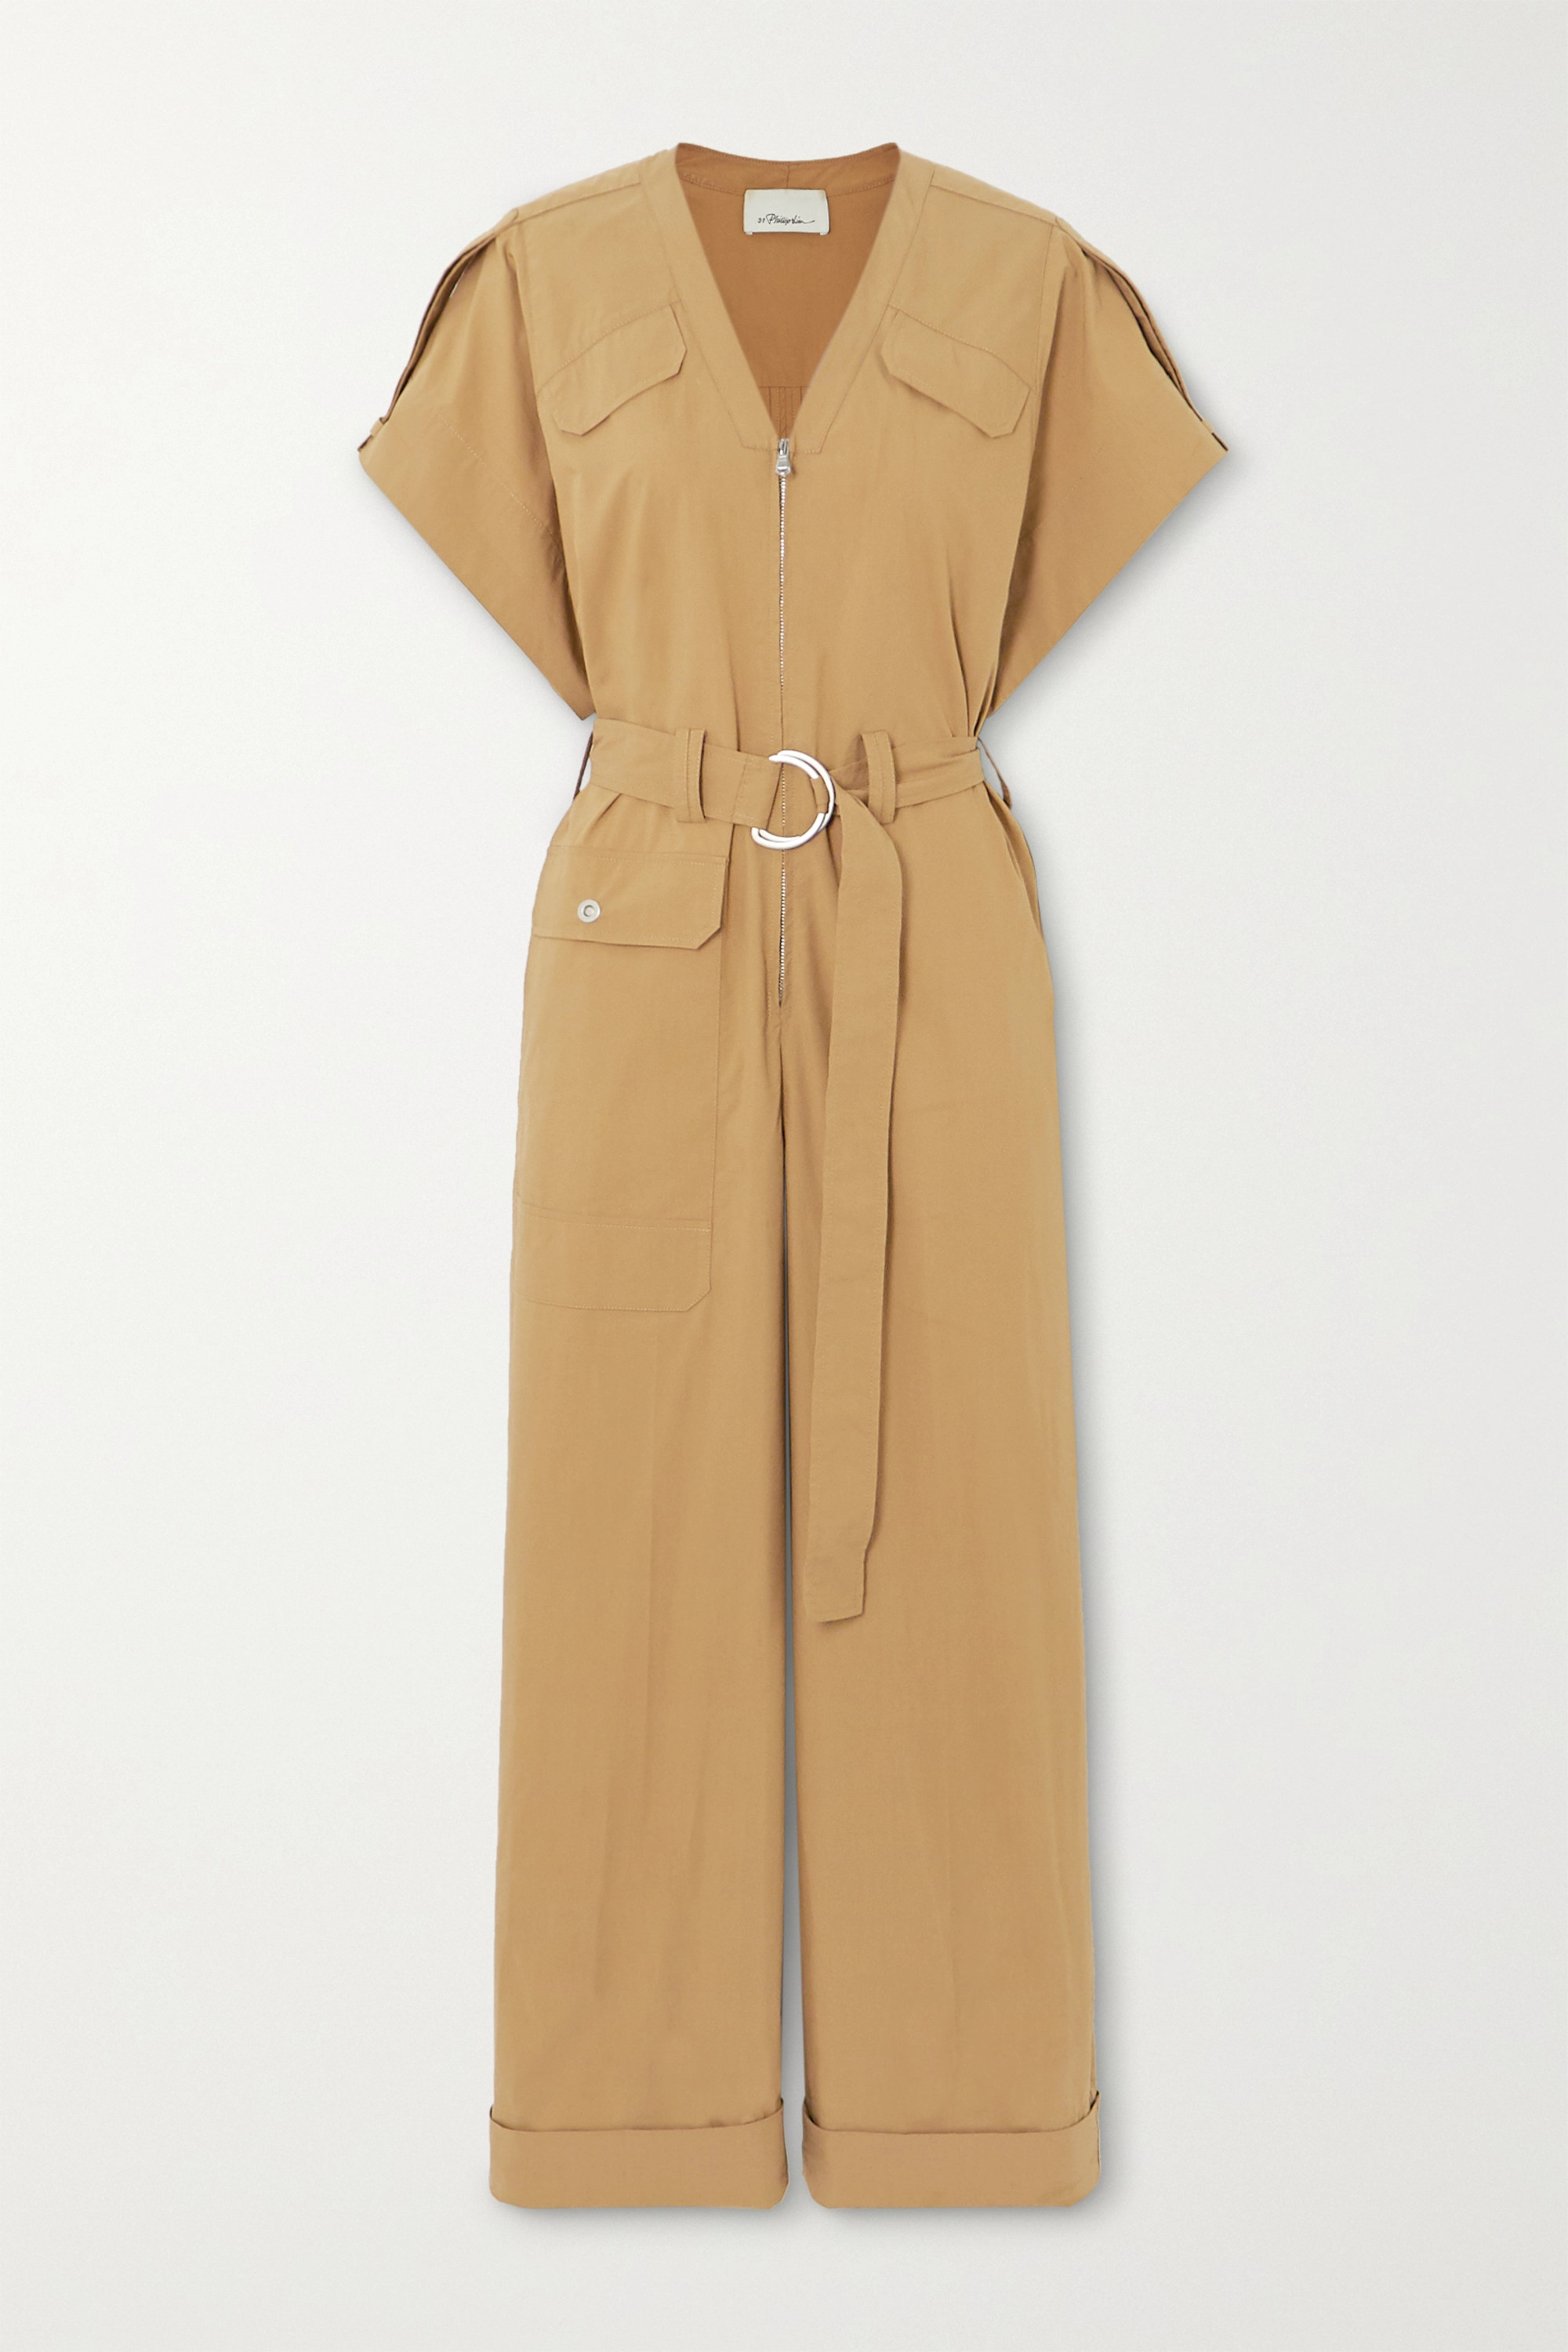 3.1 Phillip Lim + Space for Giants belted organic cotton-blend twill jumpsuit